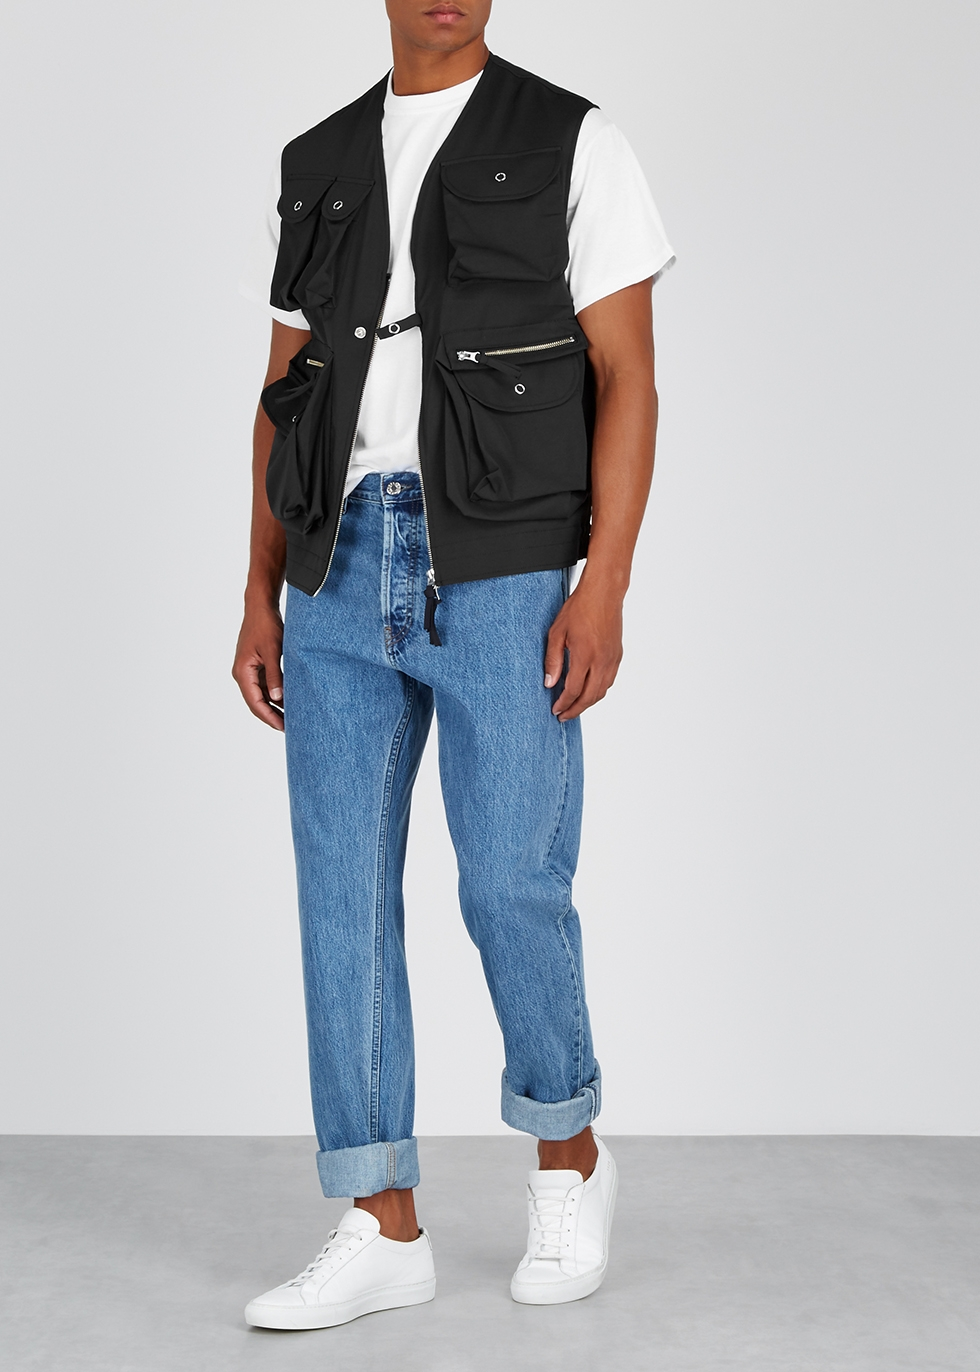 Field anthracite twill gilet - Noma T.D